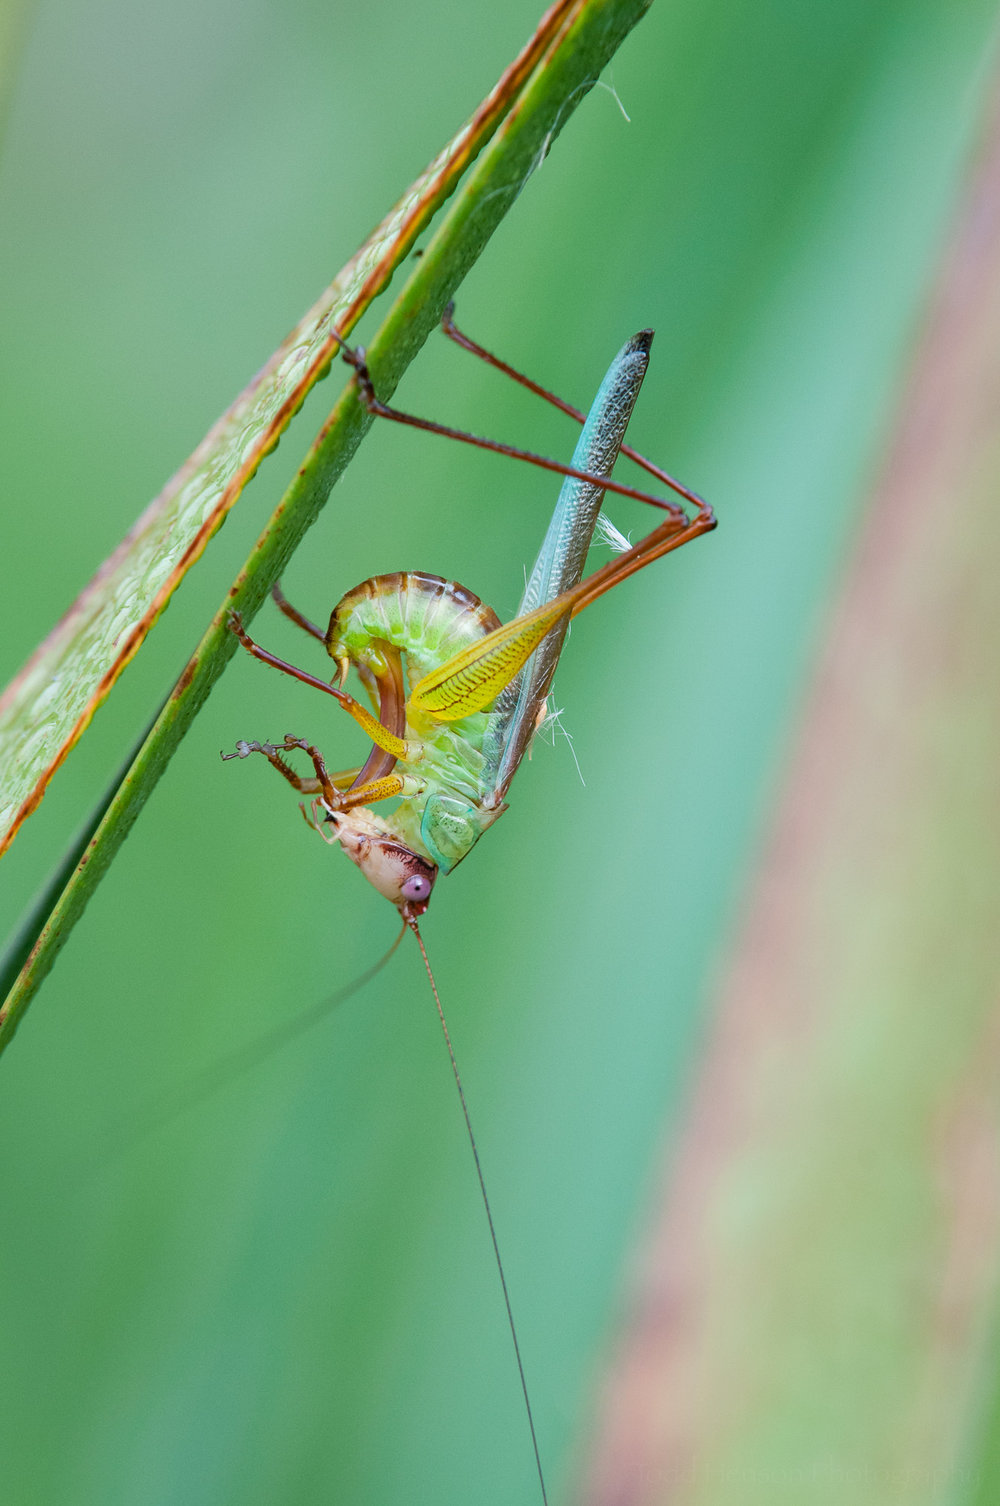 First of a sequence of a katydid cleaning itself.